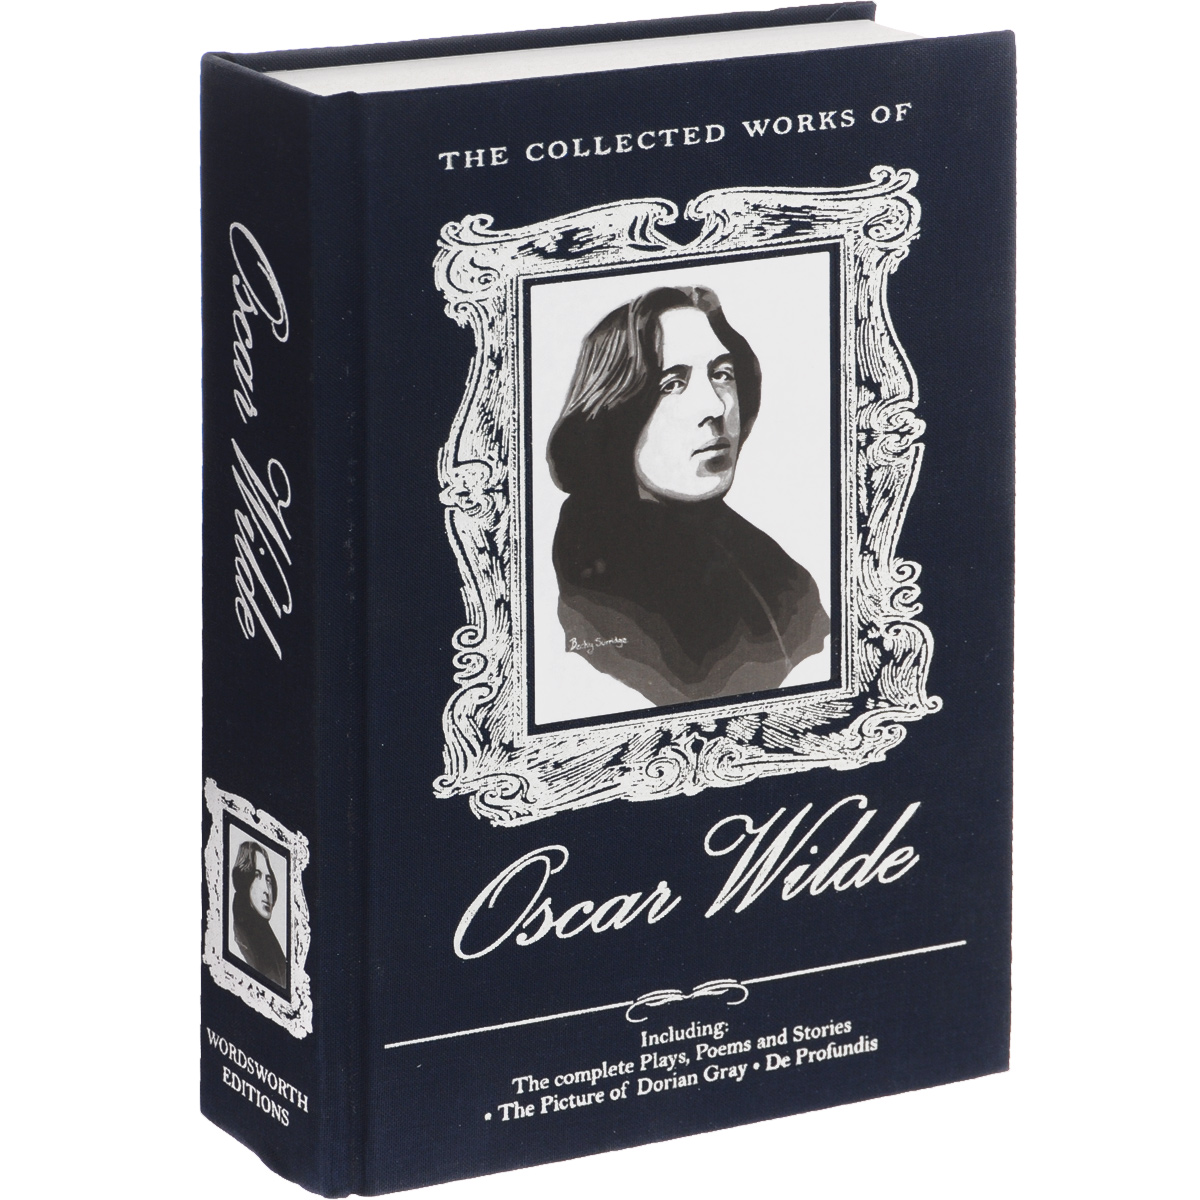 The Collected Works of Oscar Wilde collected works of oscar wilde hb